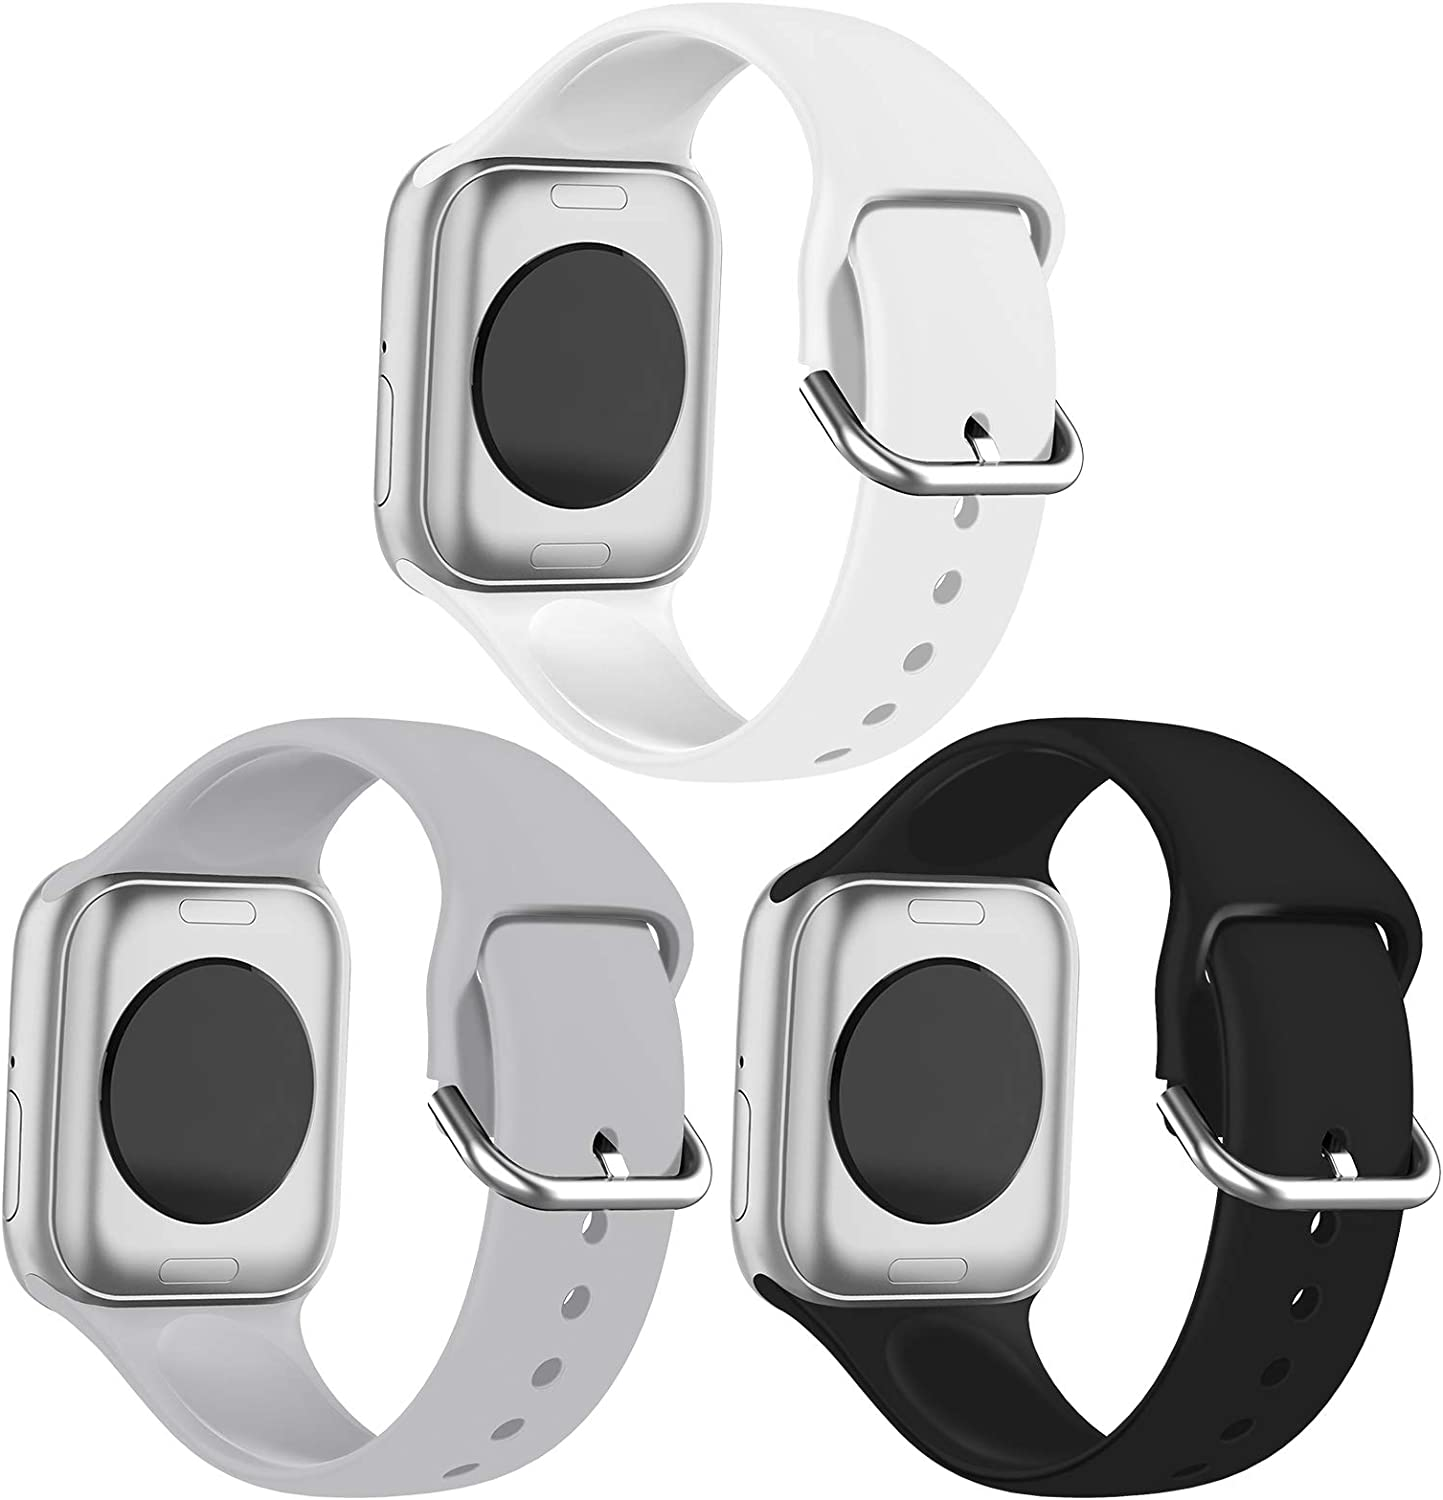 FRDERN Apple Watch Bands Compatible with Apple Watch 38mm 40mm 42mm 44mm Durable and Scratch-resistant Soft Silicone Replacement Strap for iWatch Series 5/4/3/2/1 & iWatch SE (Black/Grey/White, 42mm/44mm-M/L)